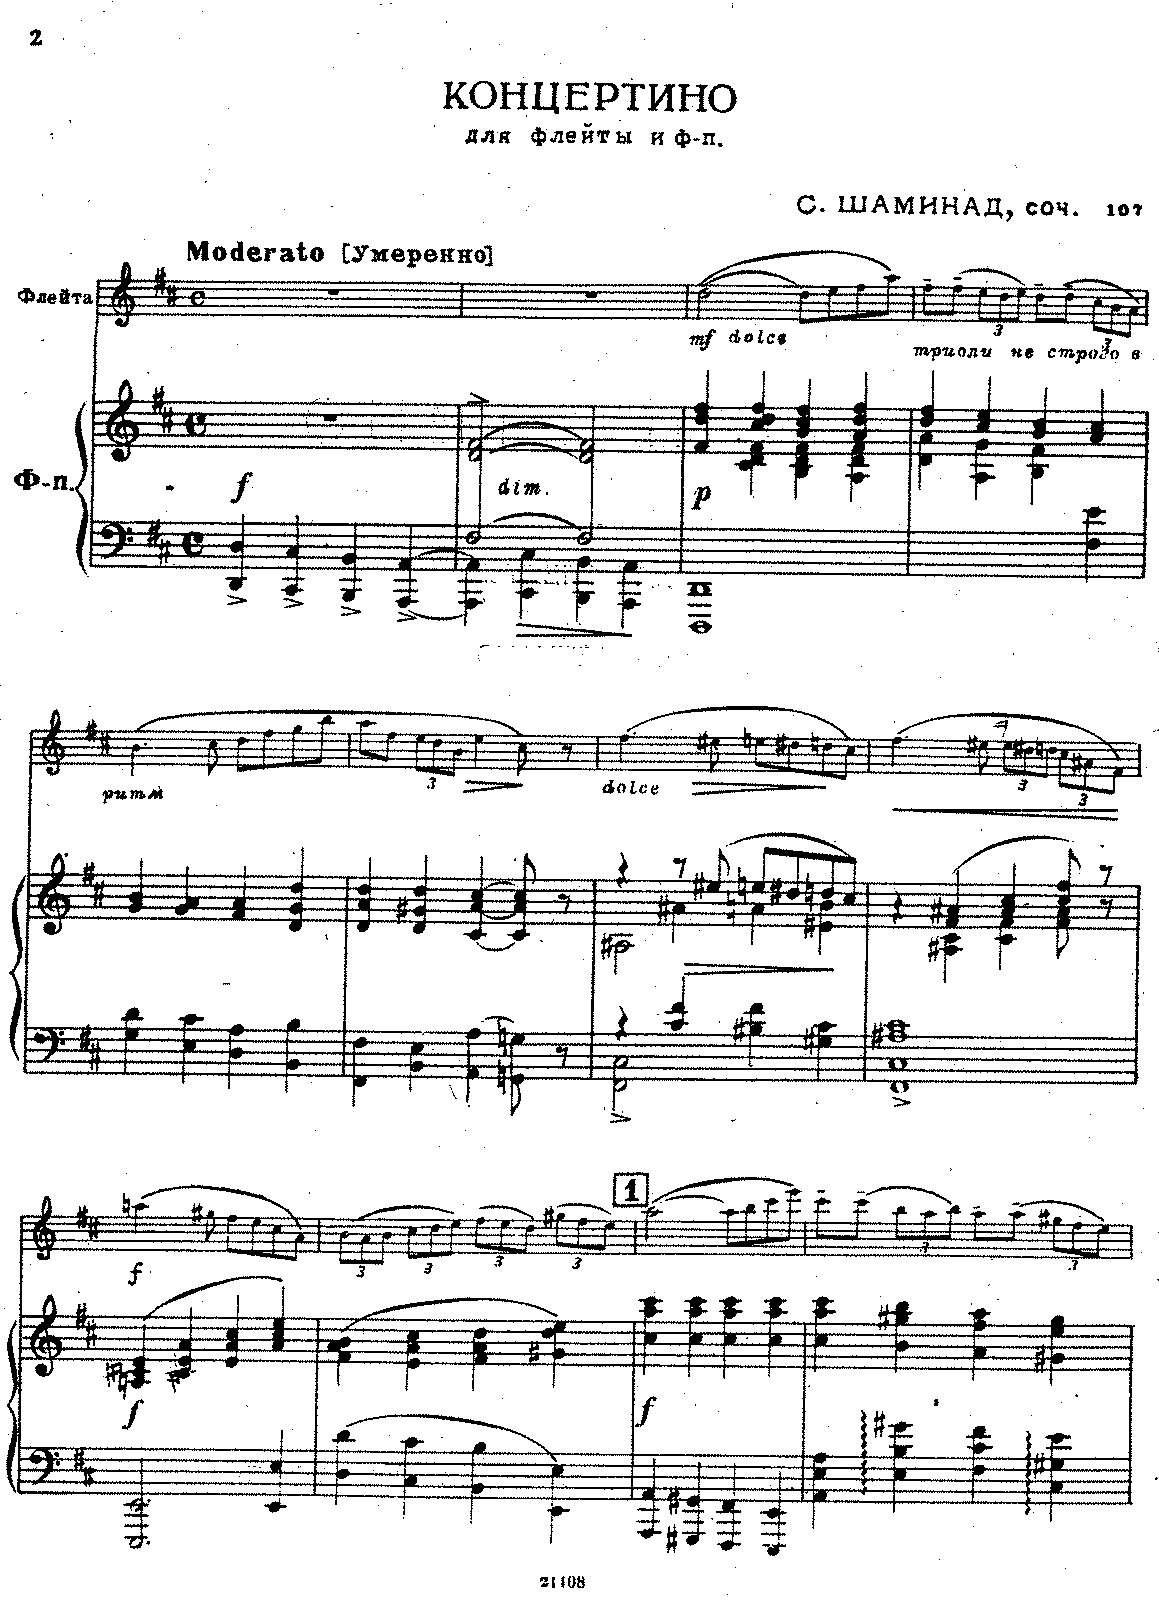 Chaminade - Op.107 - Flute Concertino.pdf